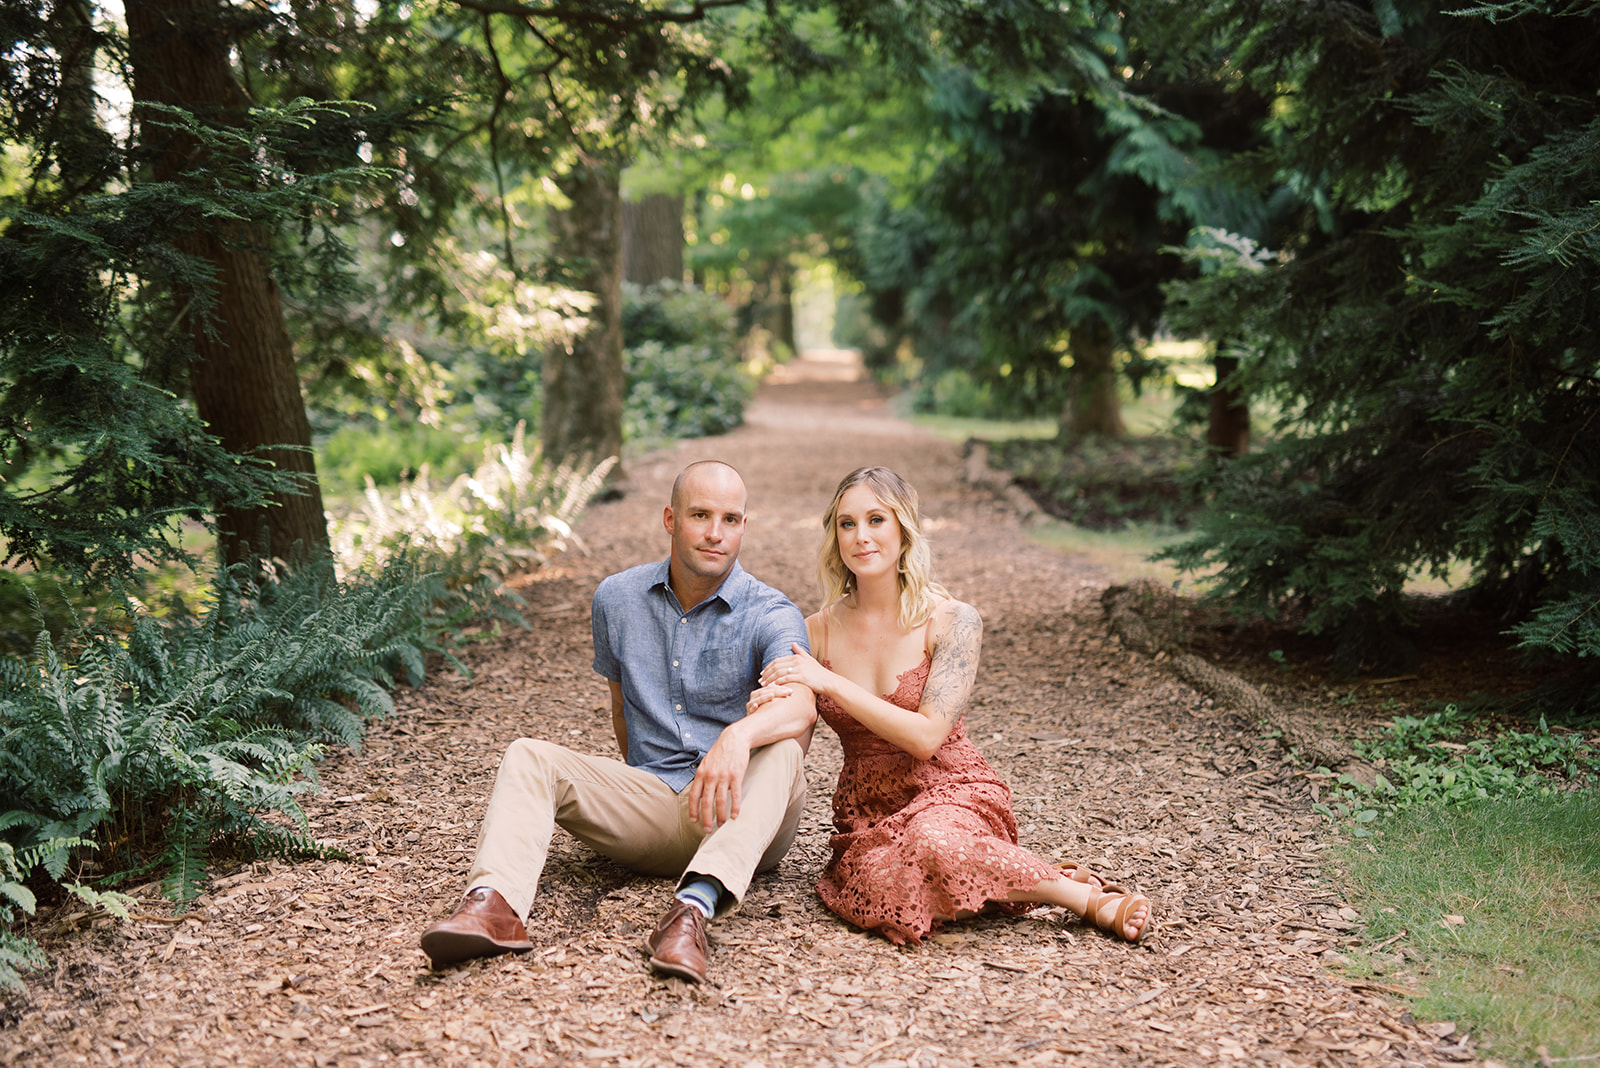 Engagement session at Pierce's Woods in Longwood Gardens.